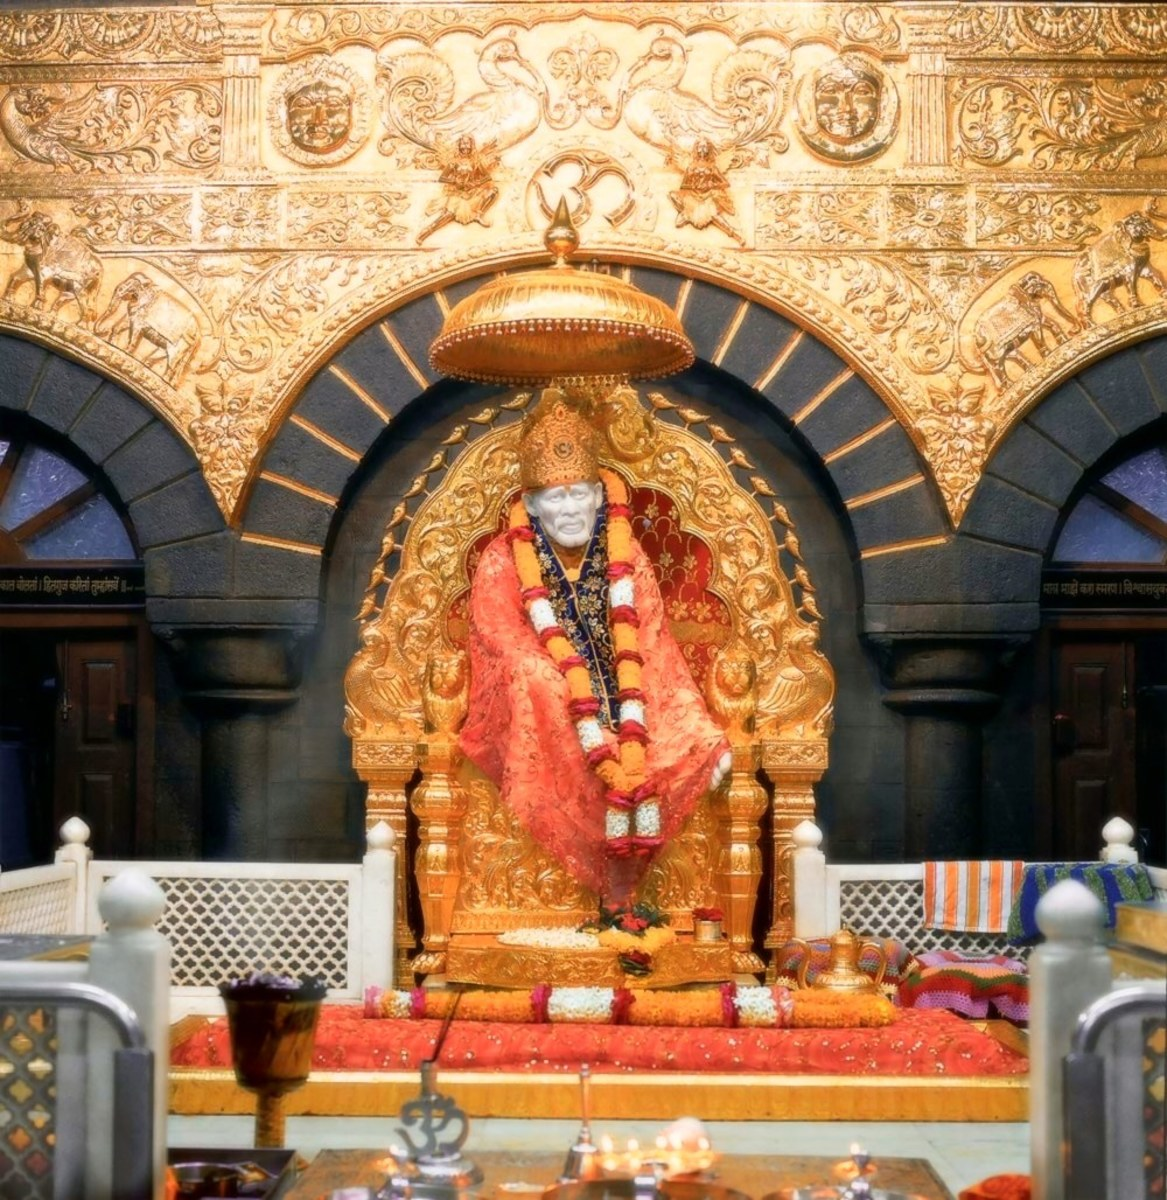 The idol of Sai Baba, Shirdi